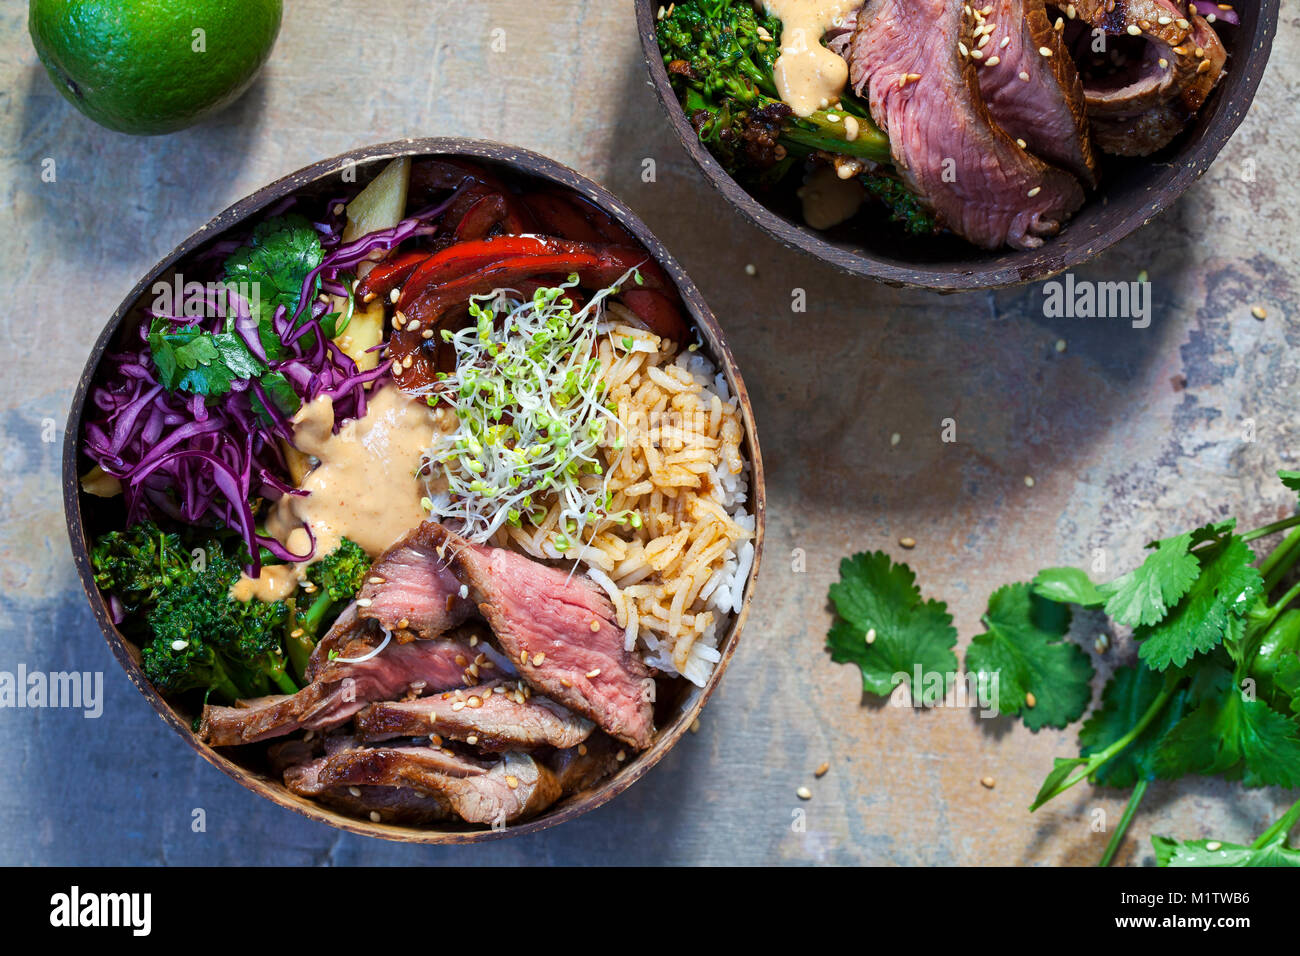 Bowl with sliced beef steak, broccoli, red cabbage, broccolli sprouts and satay sauce - Stock Image